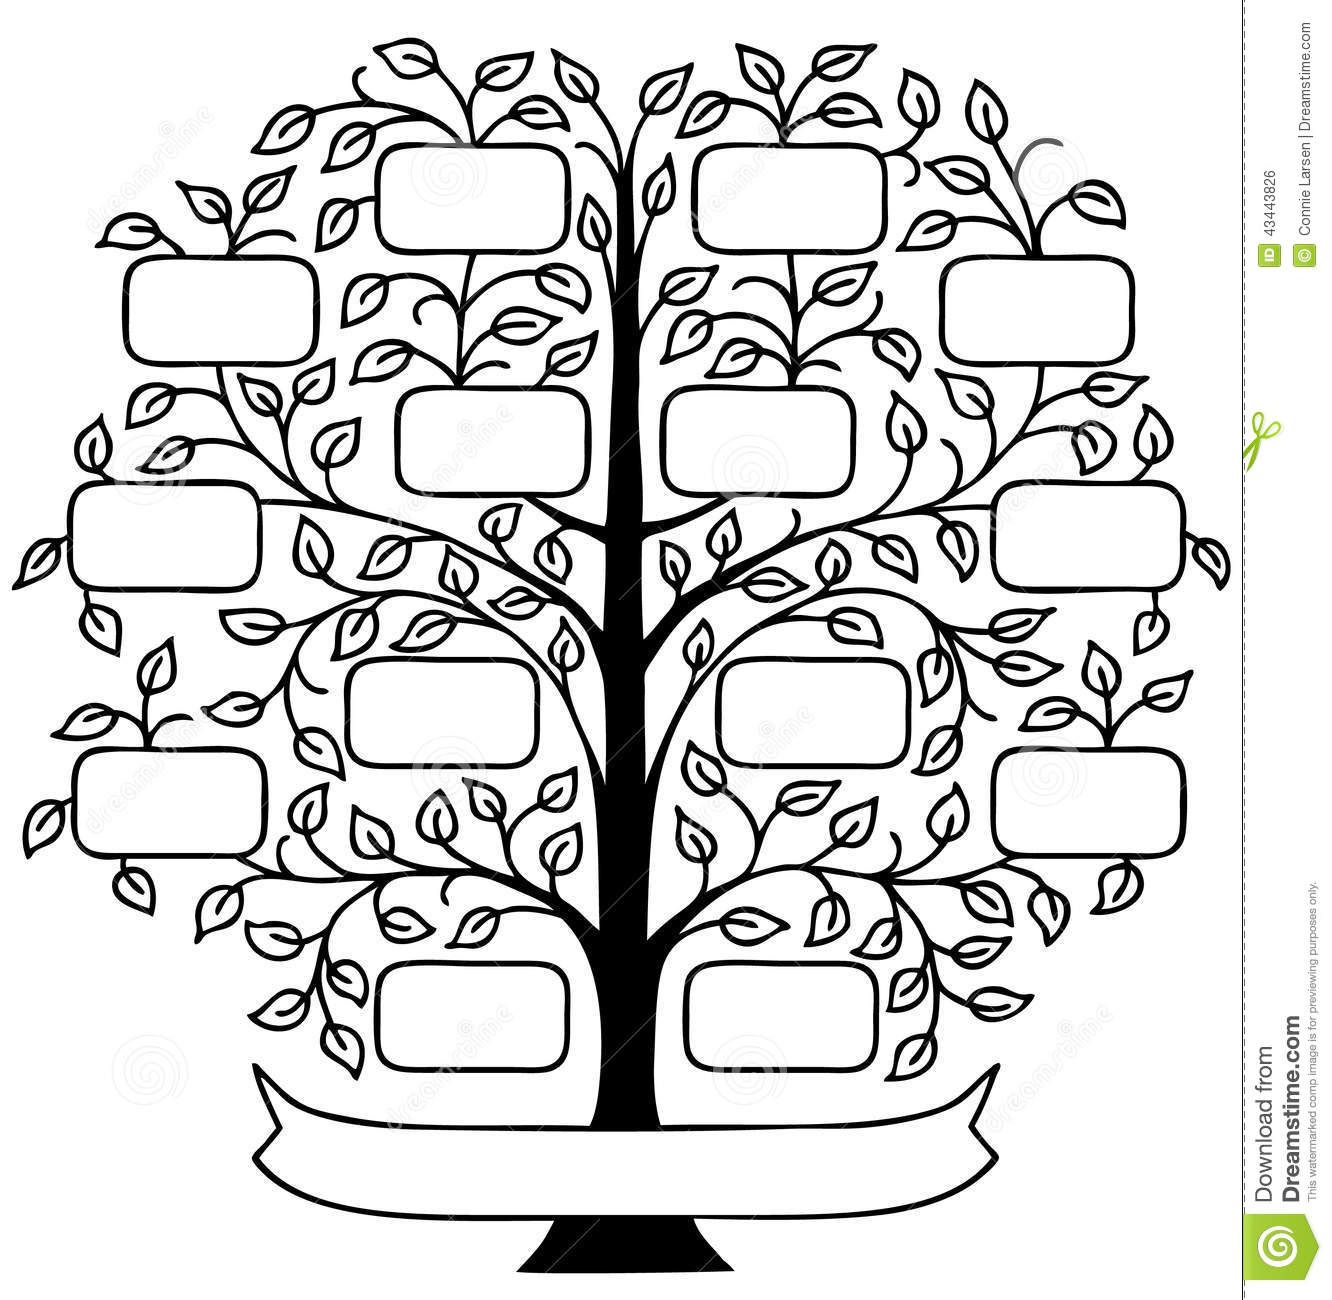 Family tree image for the living room wall | For the living room ...